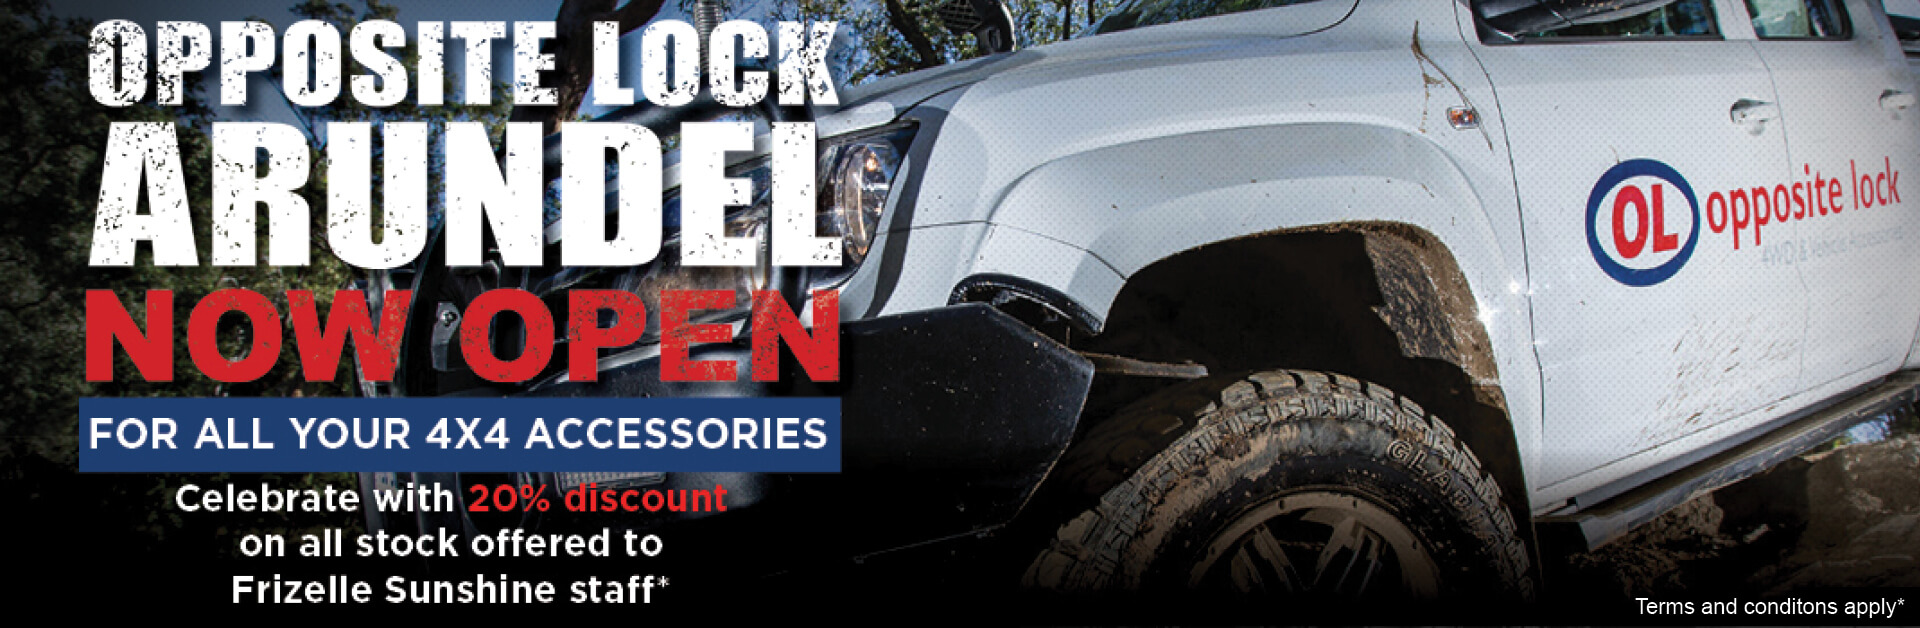 Opposite Lock 4WD Accessories now open Arundel